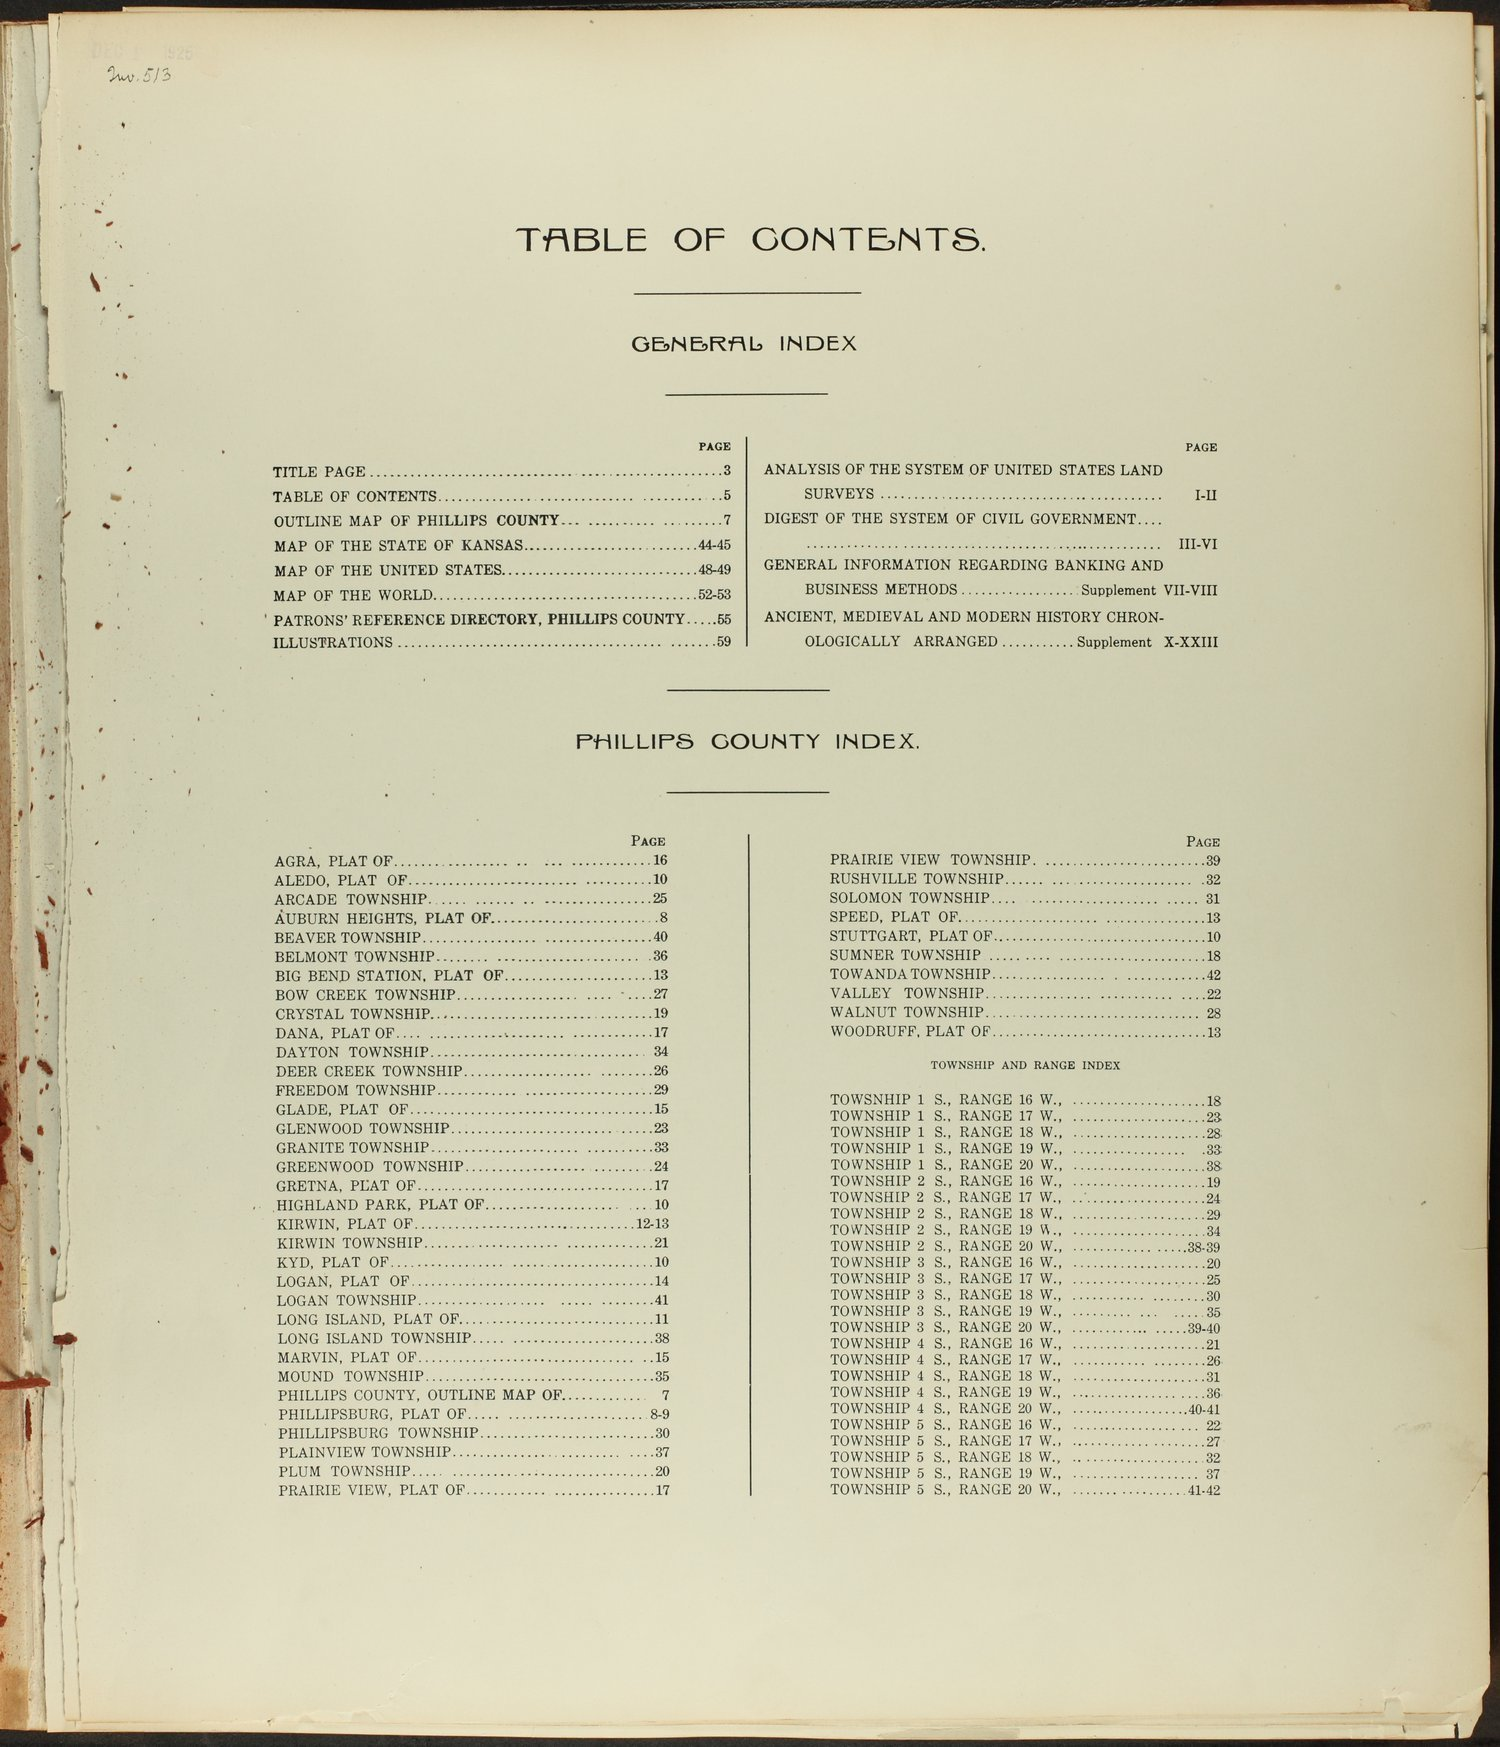 Standard atlas of Phillips County, Kansas - Table of Contents